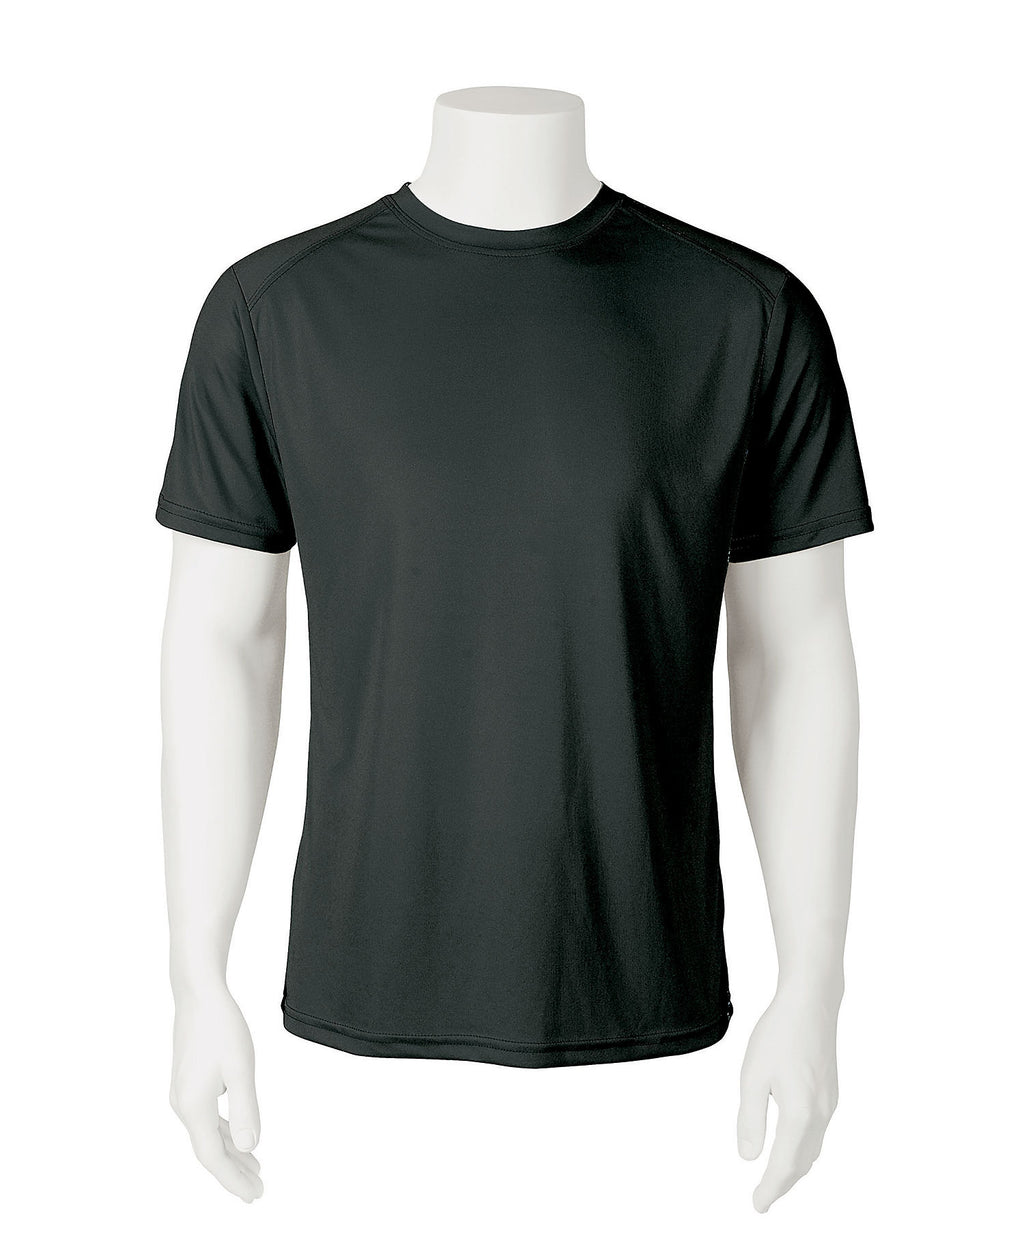 Men's DRI-FIT T-Shirt PREMIUM